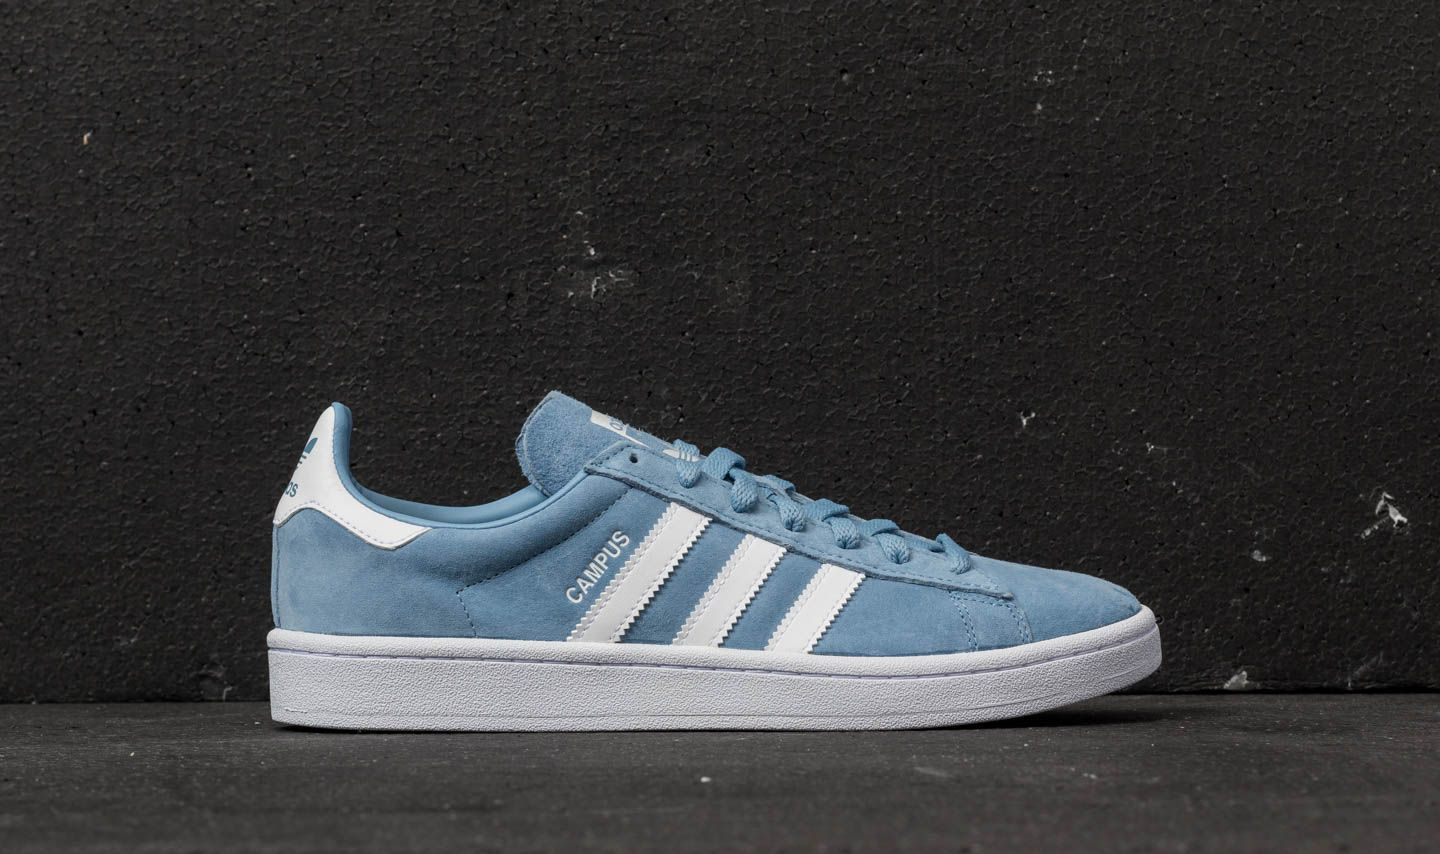 quality design 7a728 afc98 adidas Campus Ash Blue Ftw White Ftw White at a great price 52 €